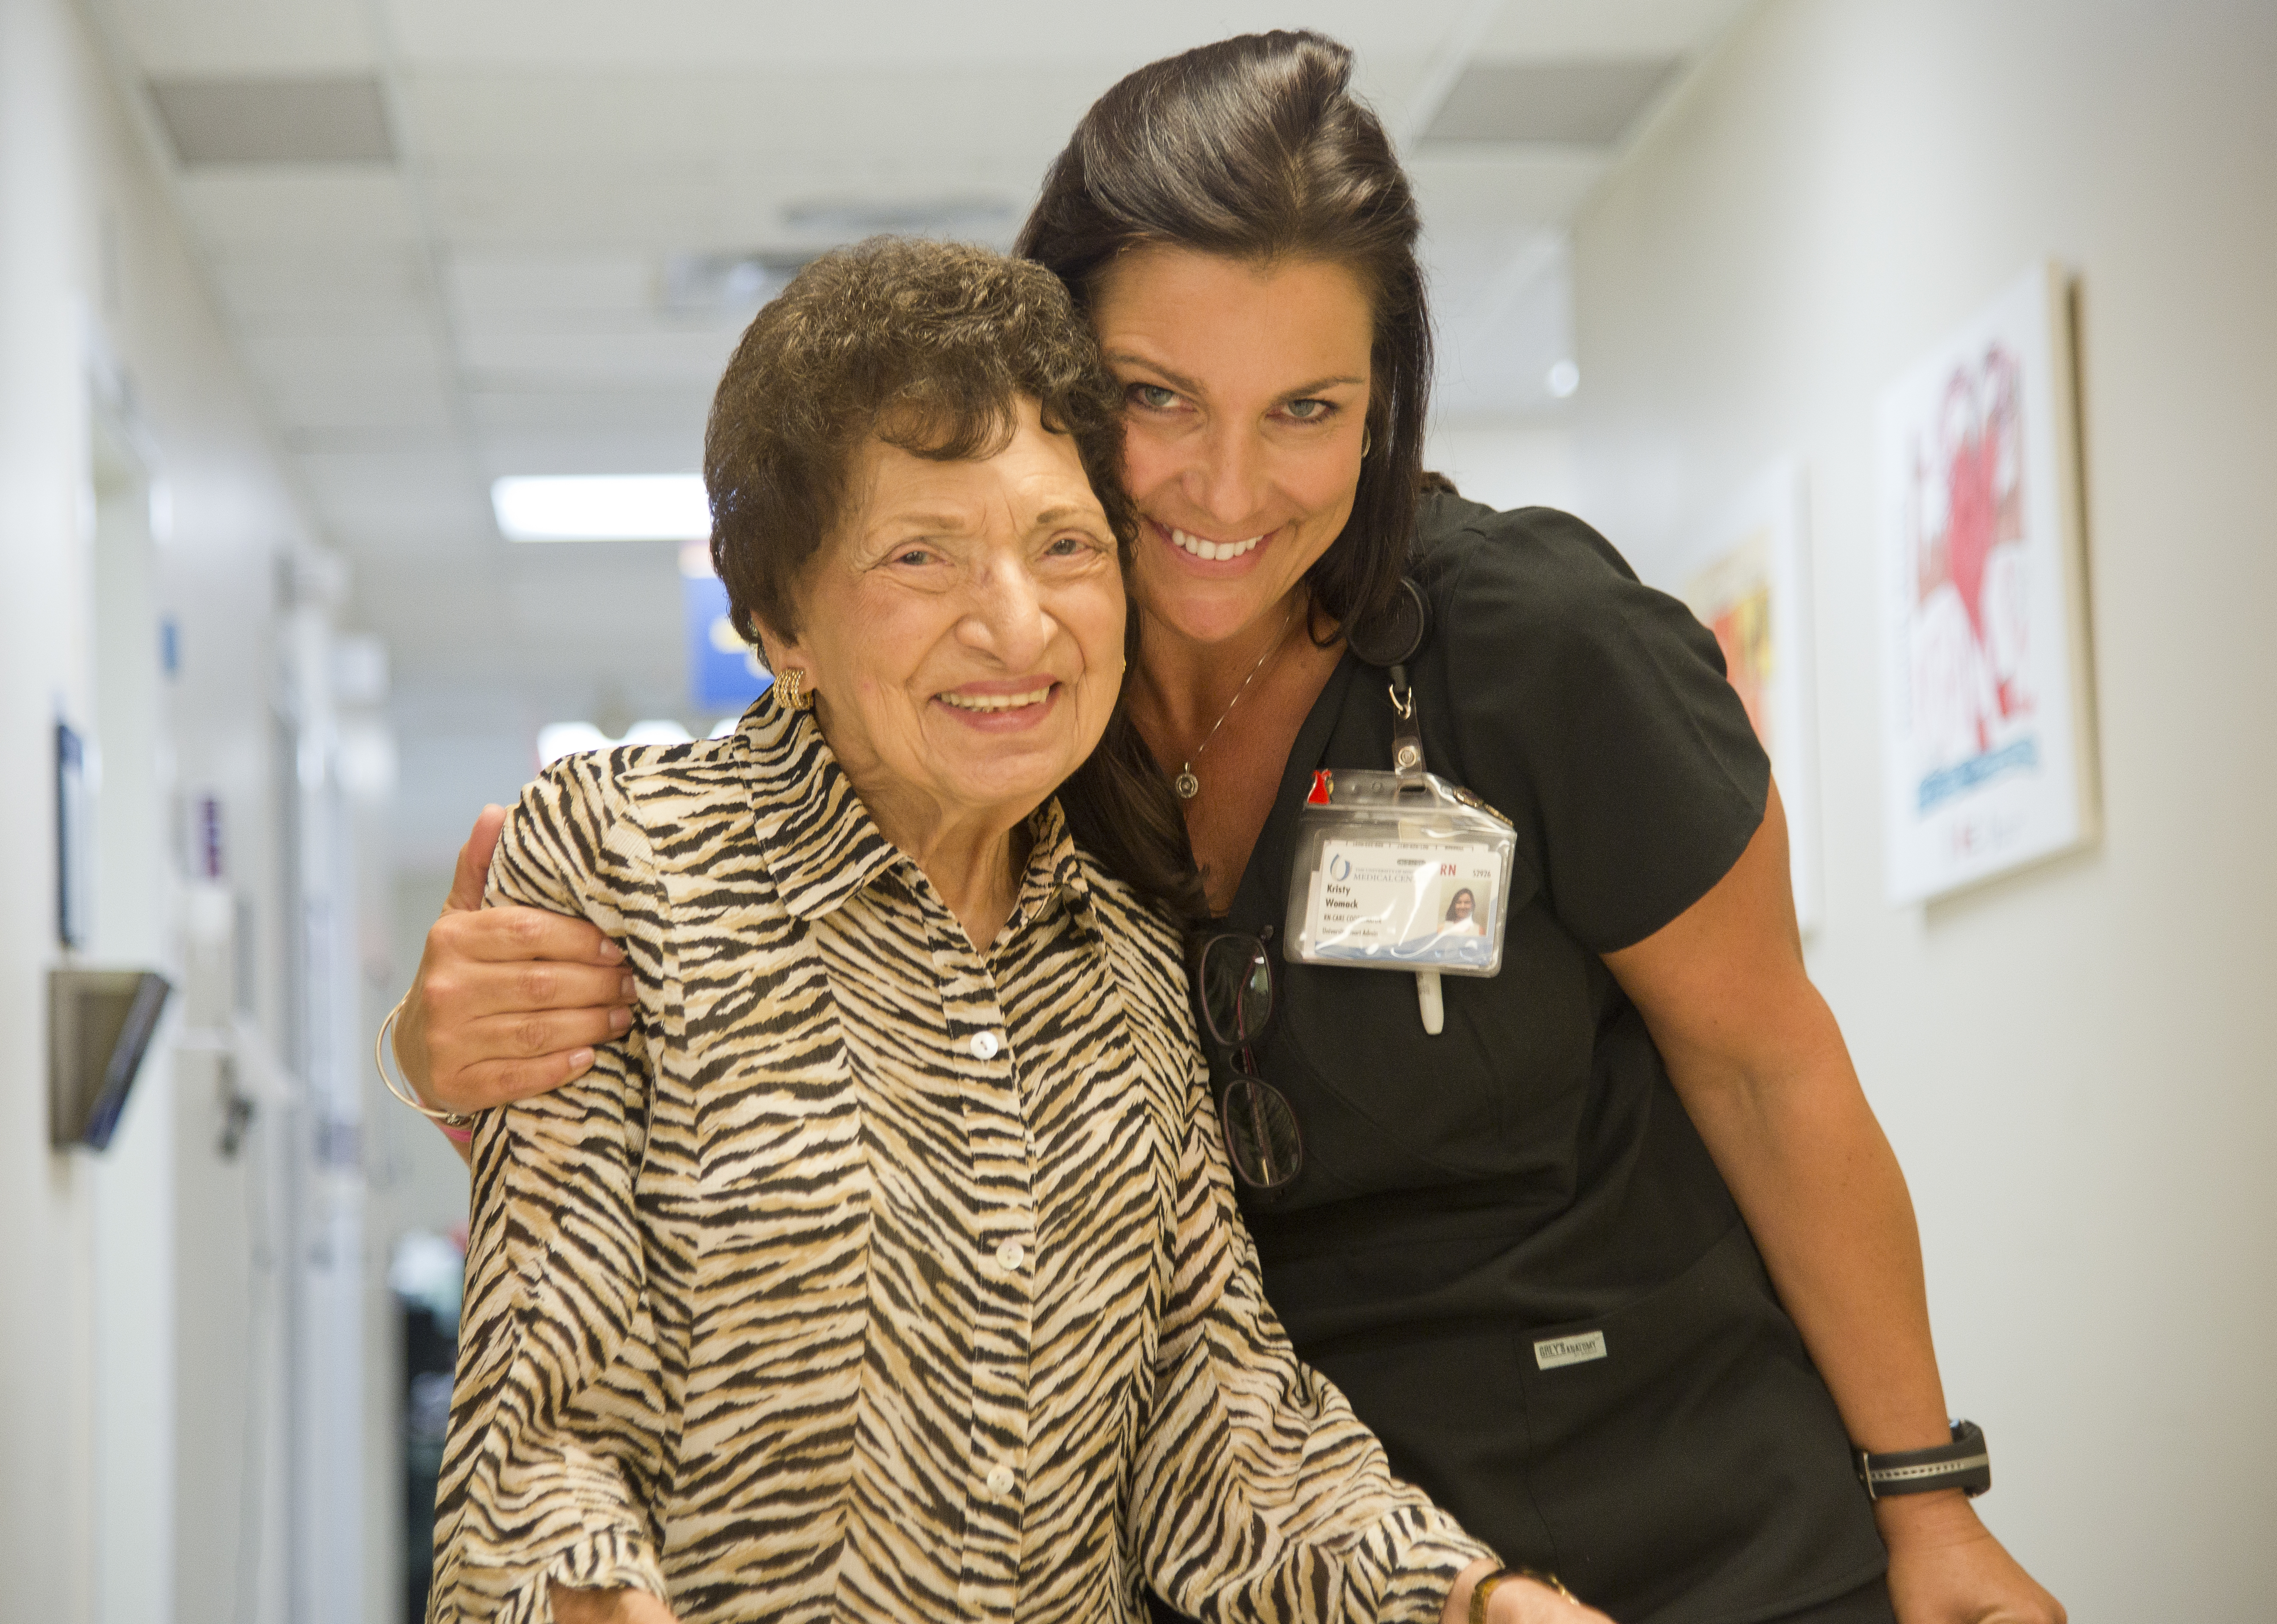 Patient makes UMMC history as oldest TAVR recipient - University of ...